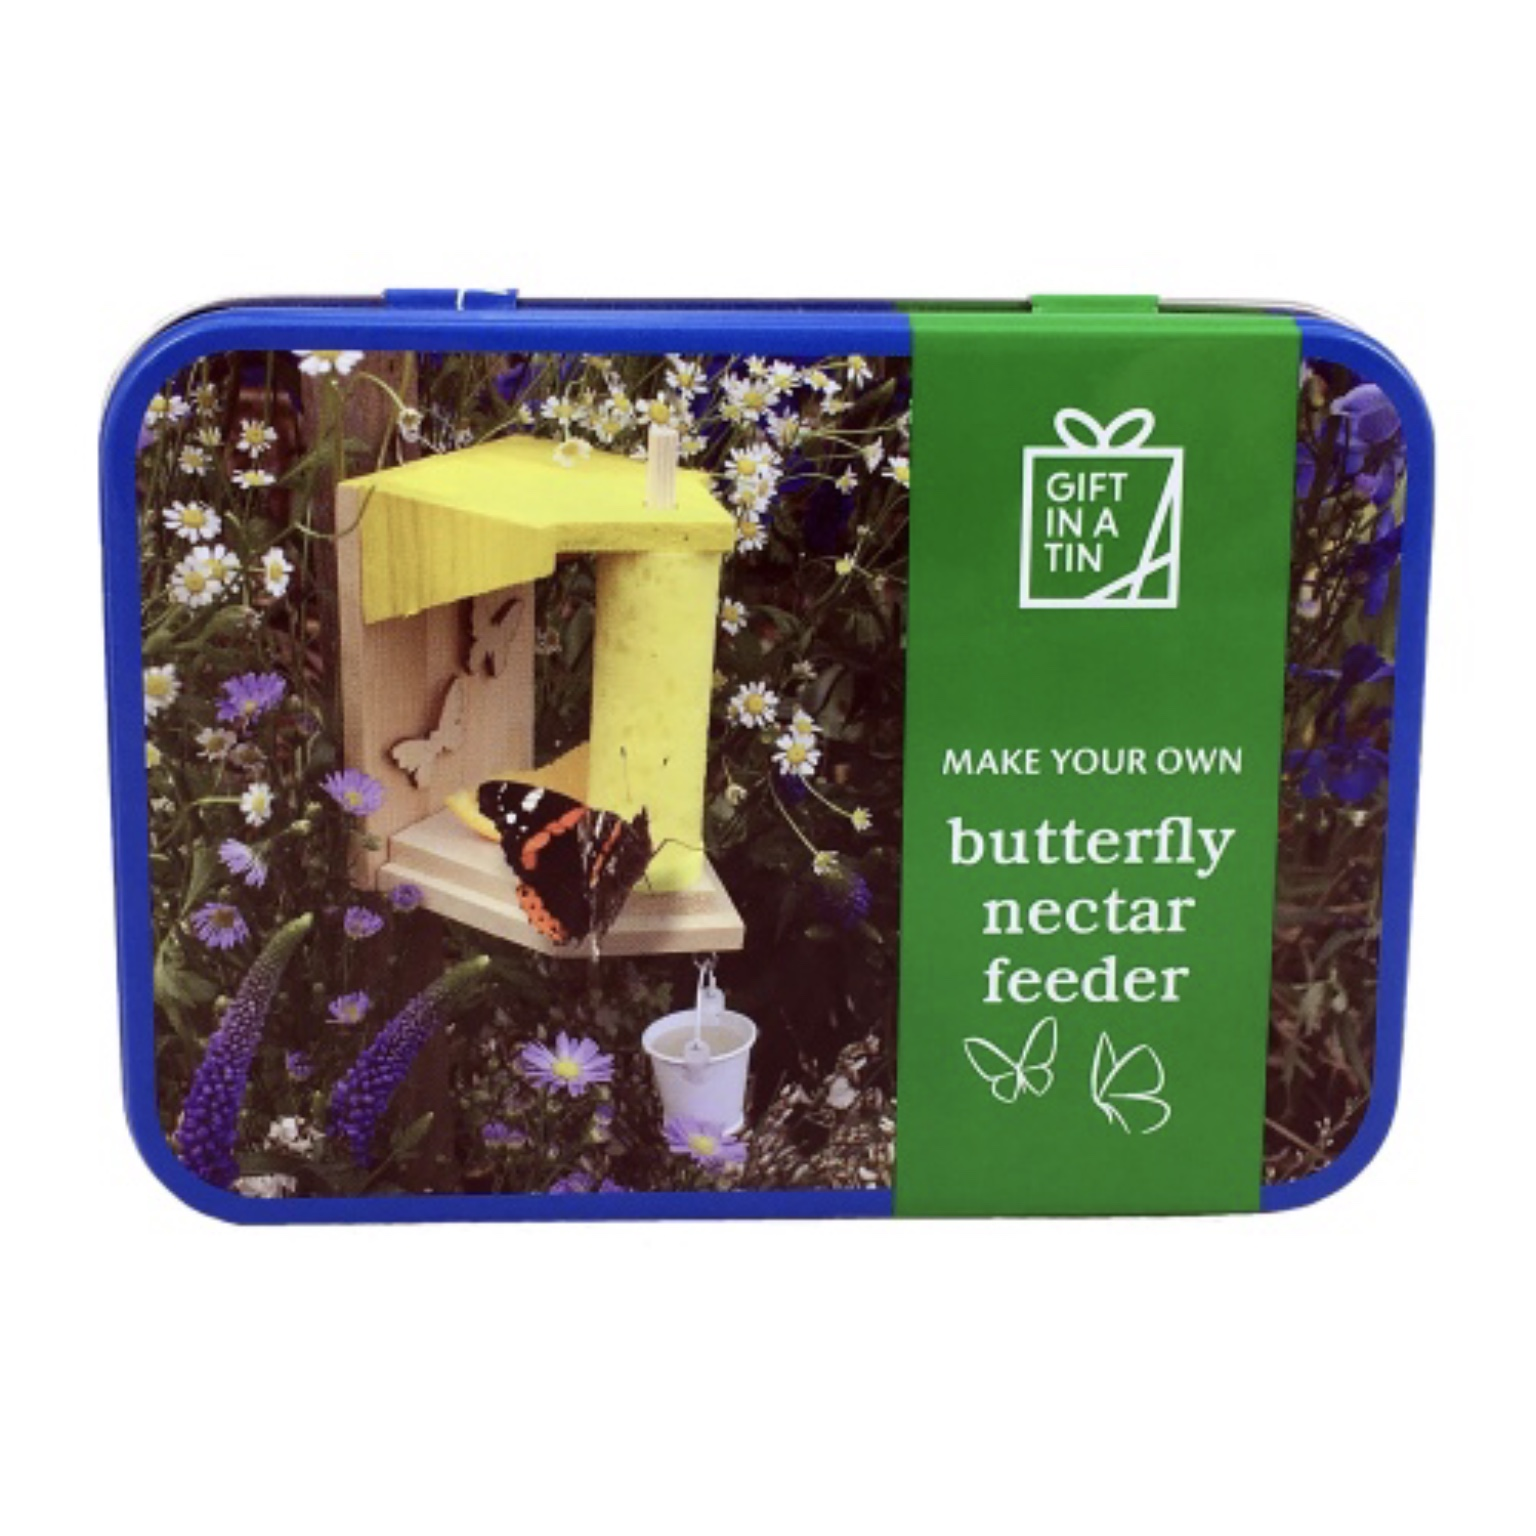 'Butterfly Nectar Feeder' Gift in a Tin